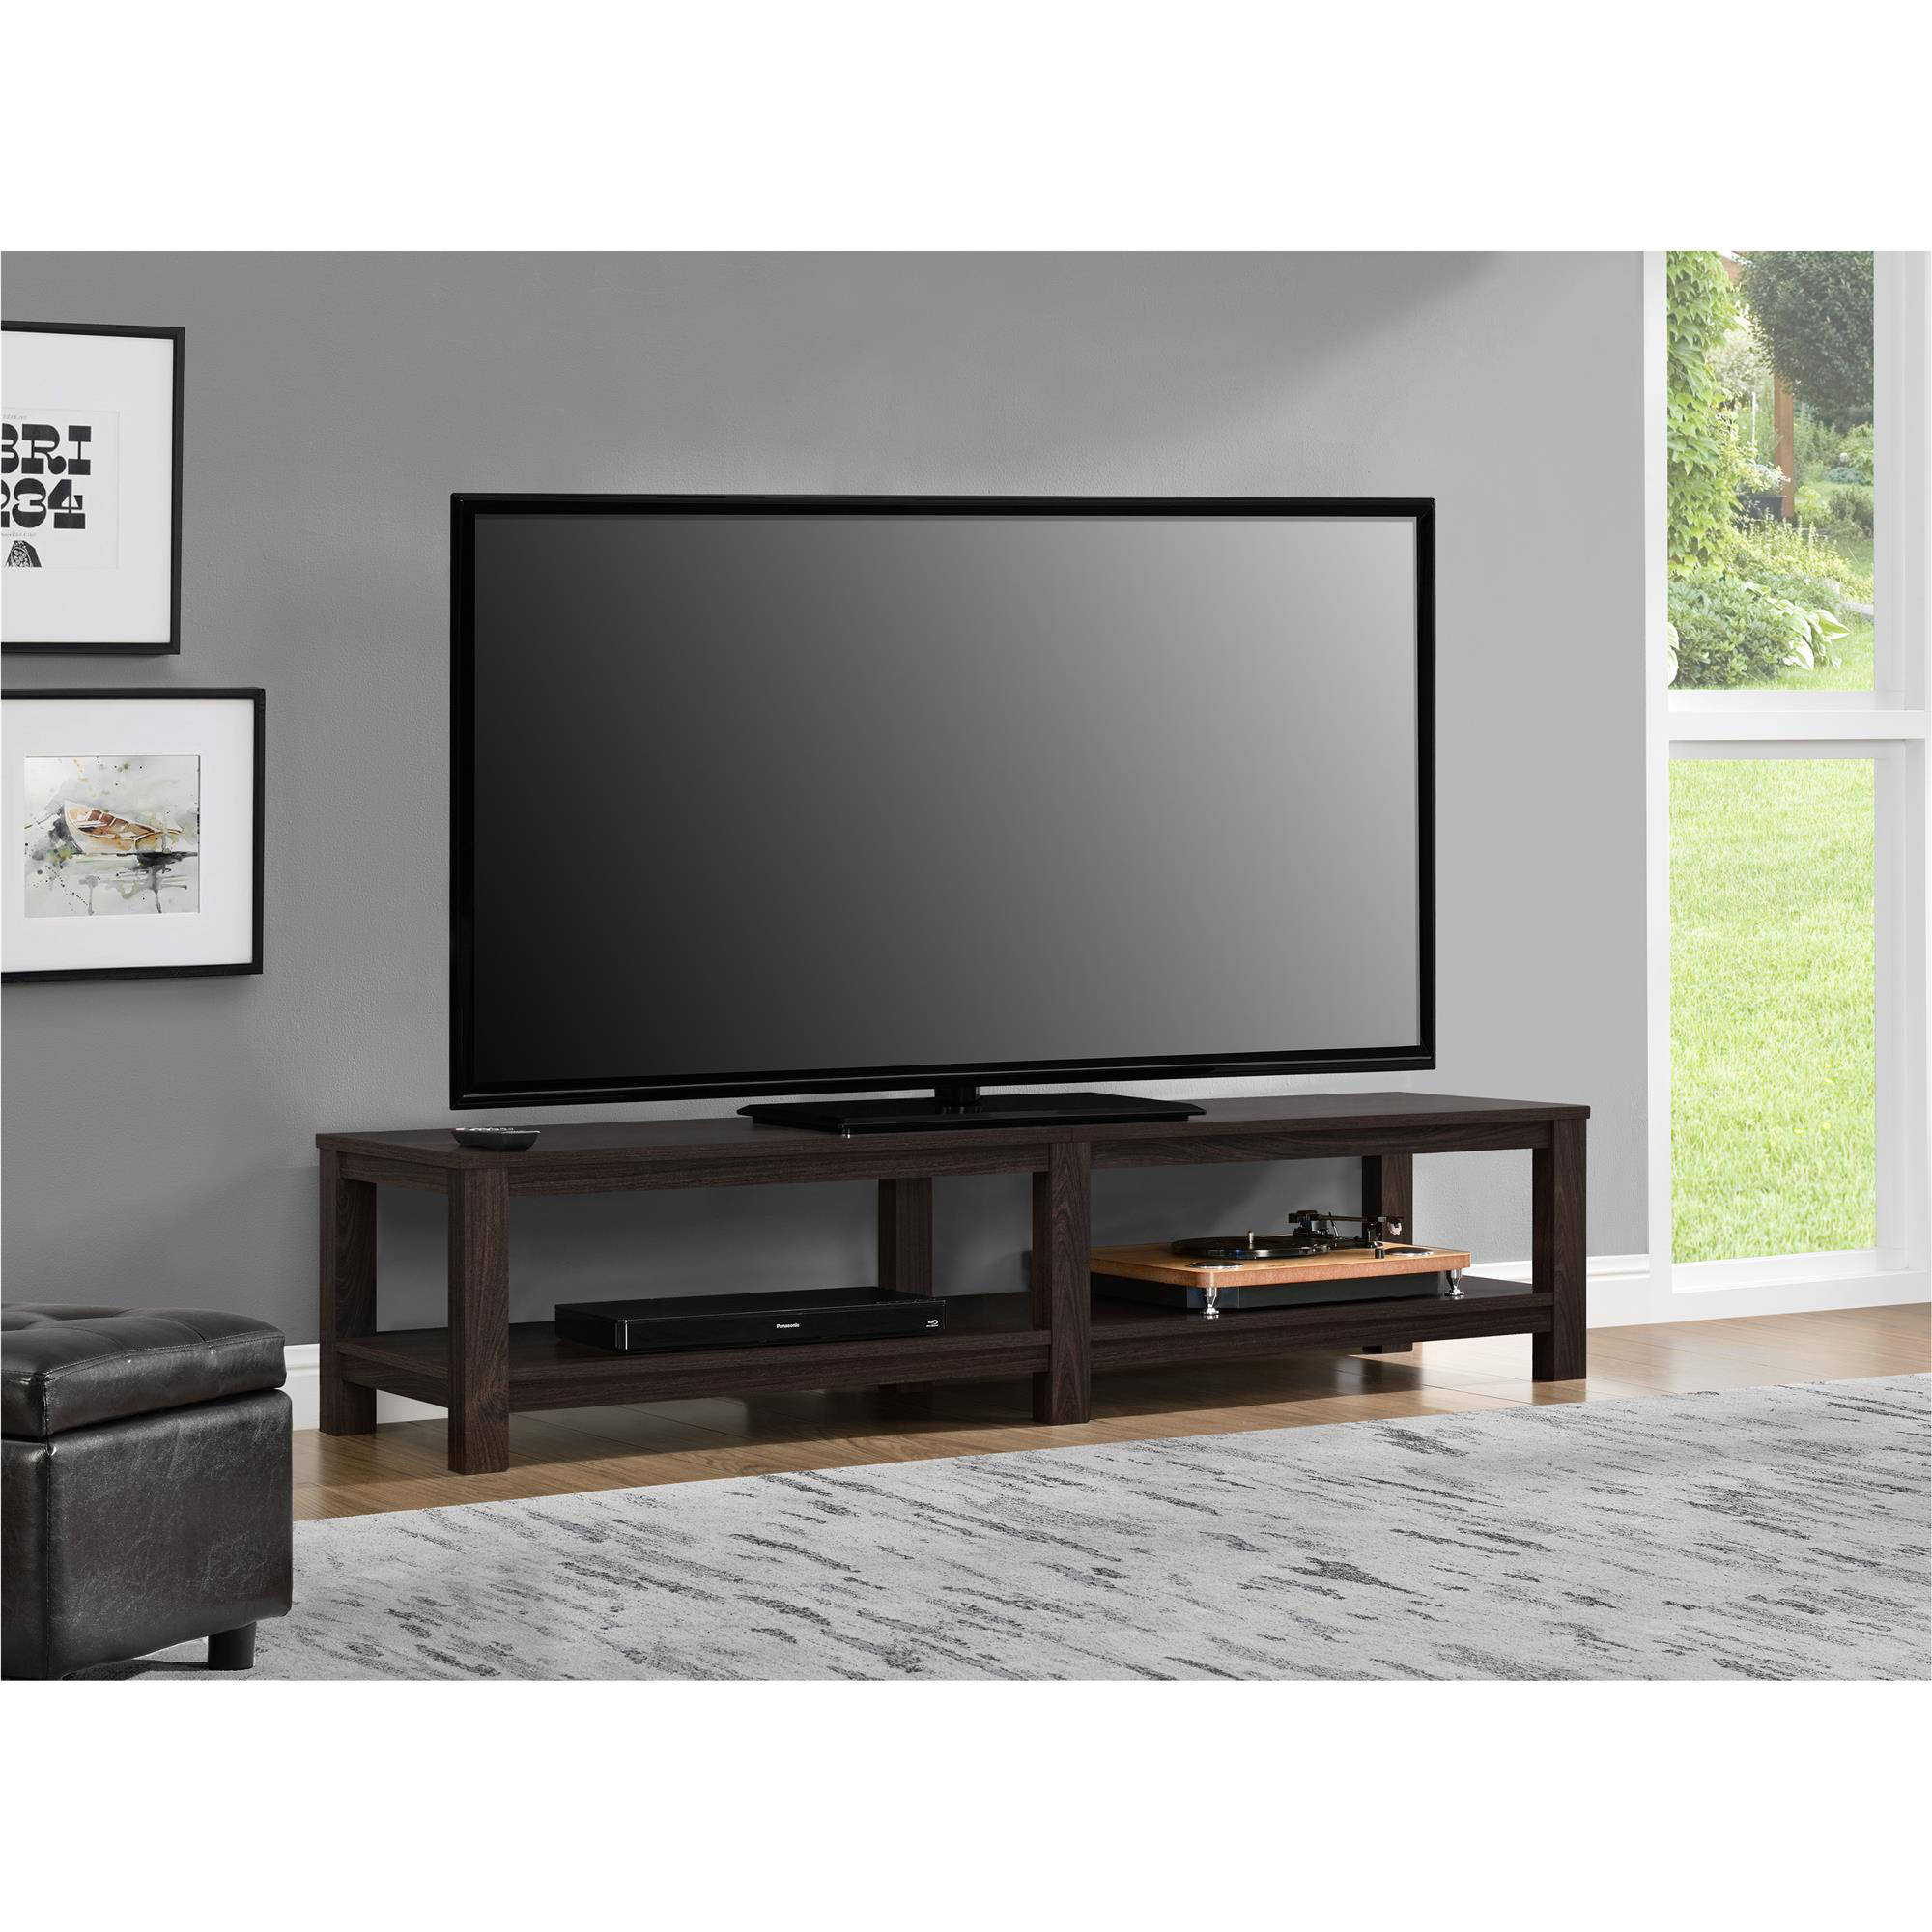 Mainstays Parsons Tv Stand For Tvs Up To 65 Quot Multiple